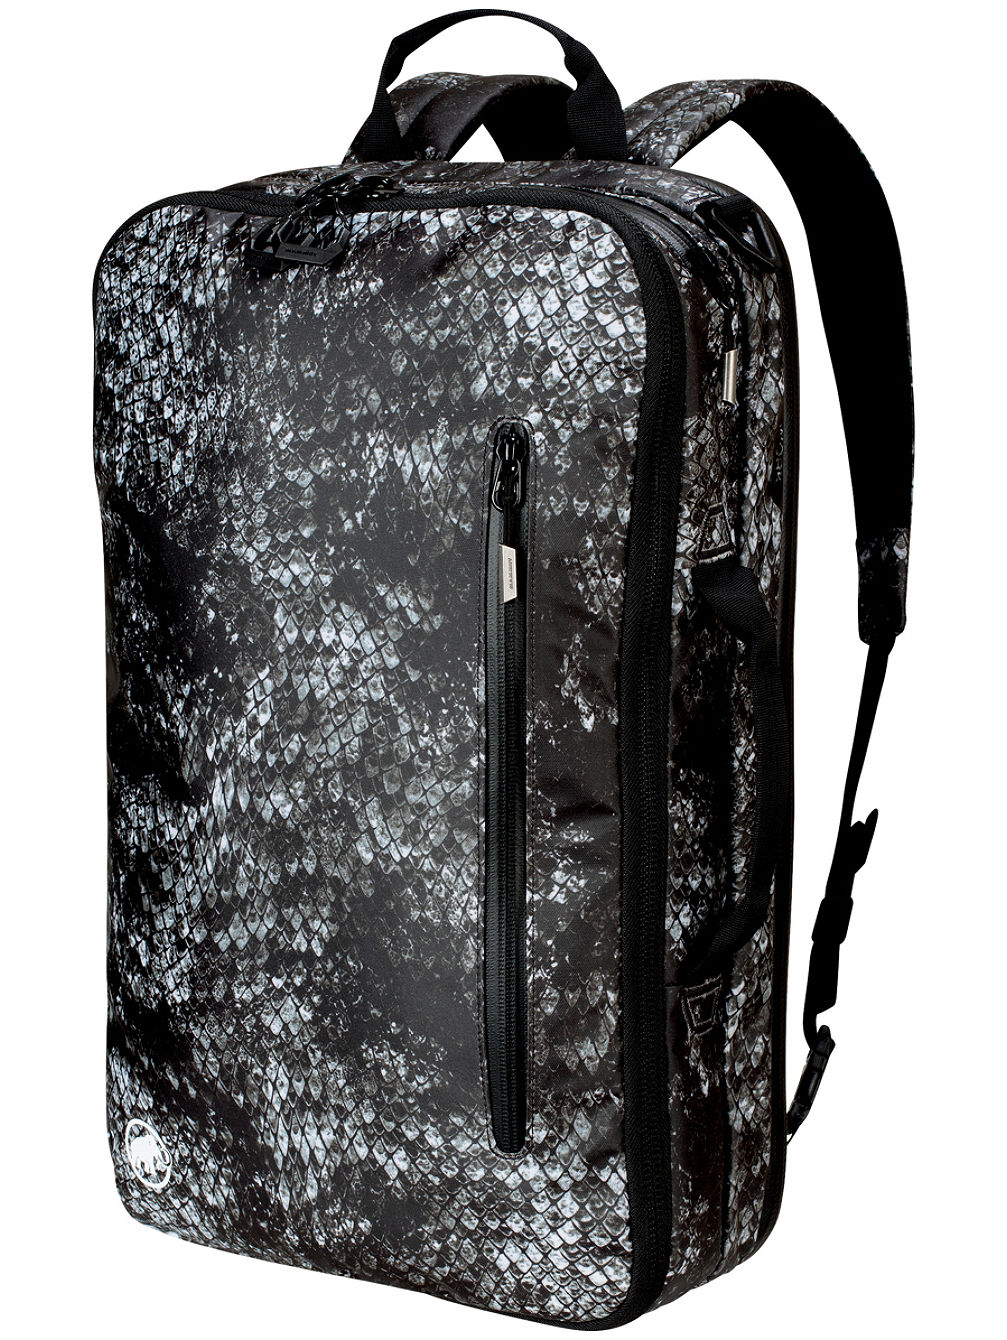 50% off arriving official photos Seon 3-Way X 18L Backpack